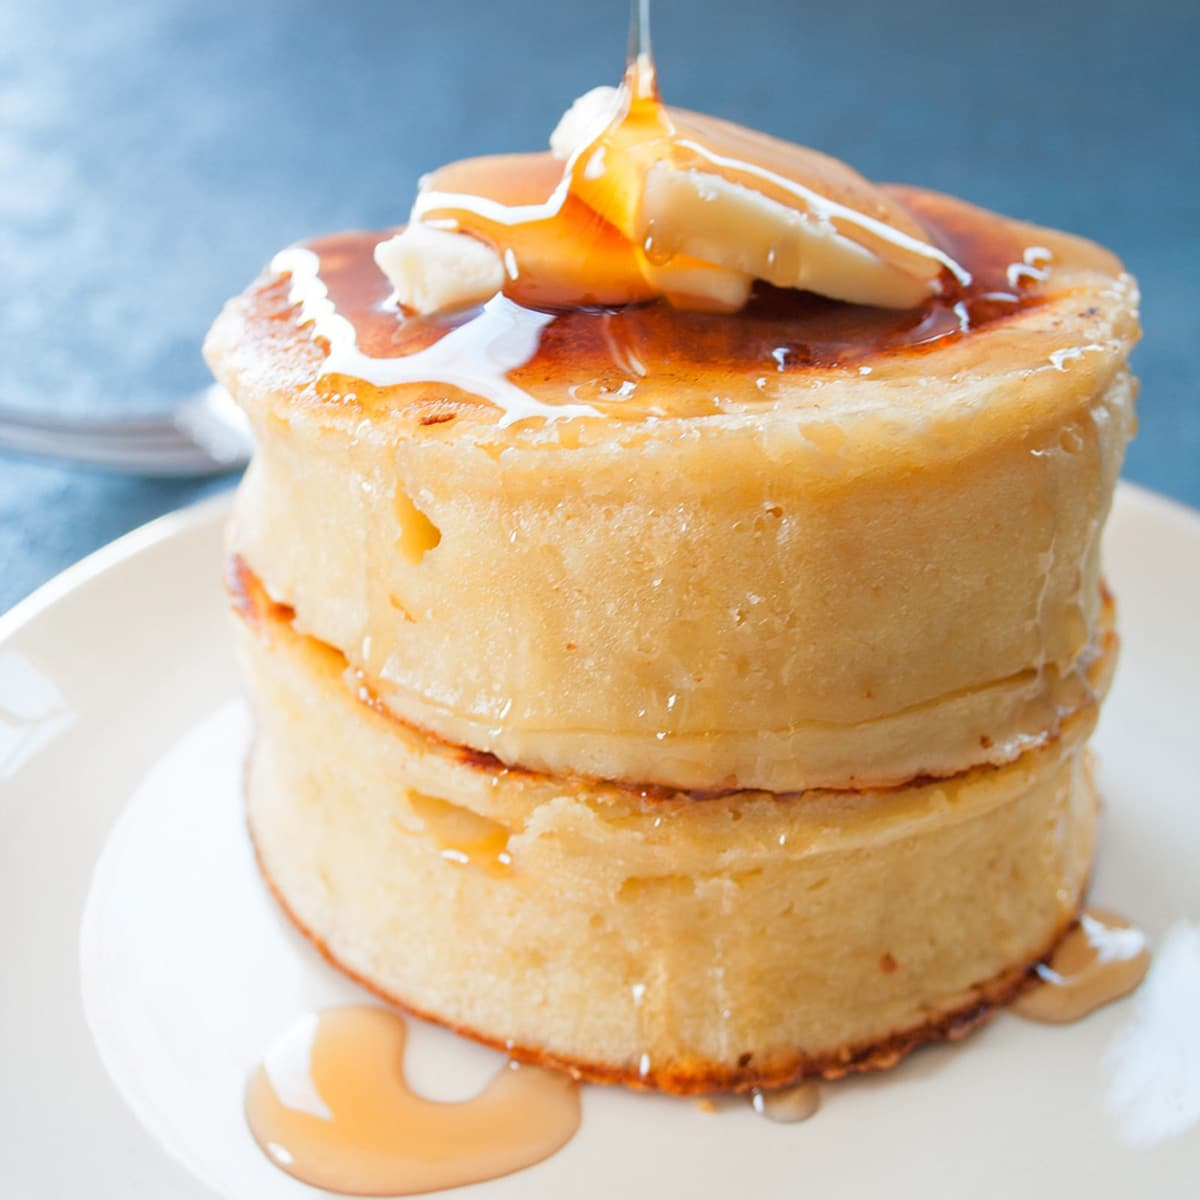 Stacked Japanese fluffy pancakes with butter and syrup.